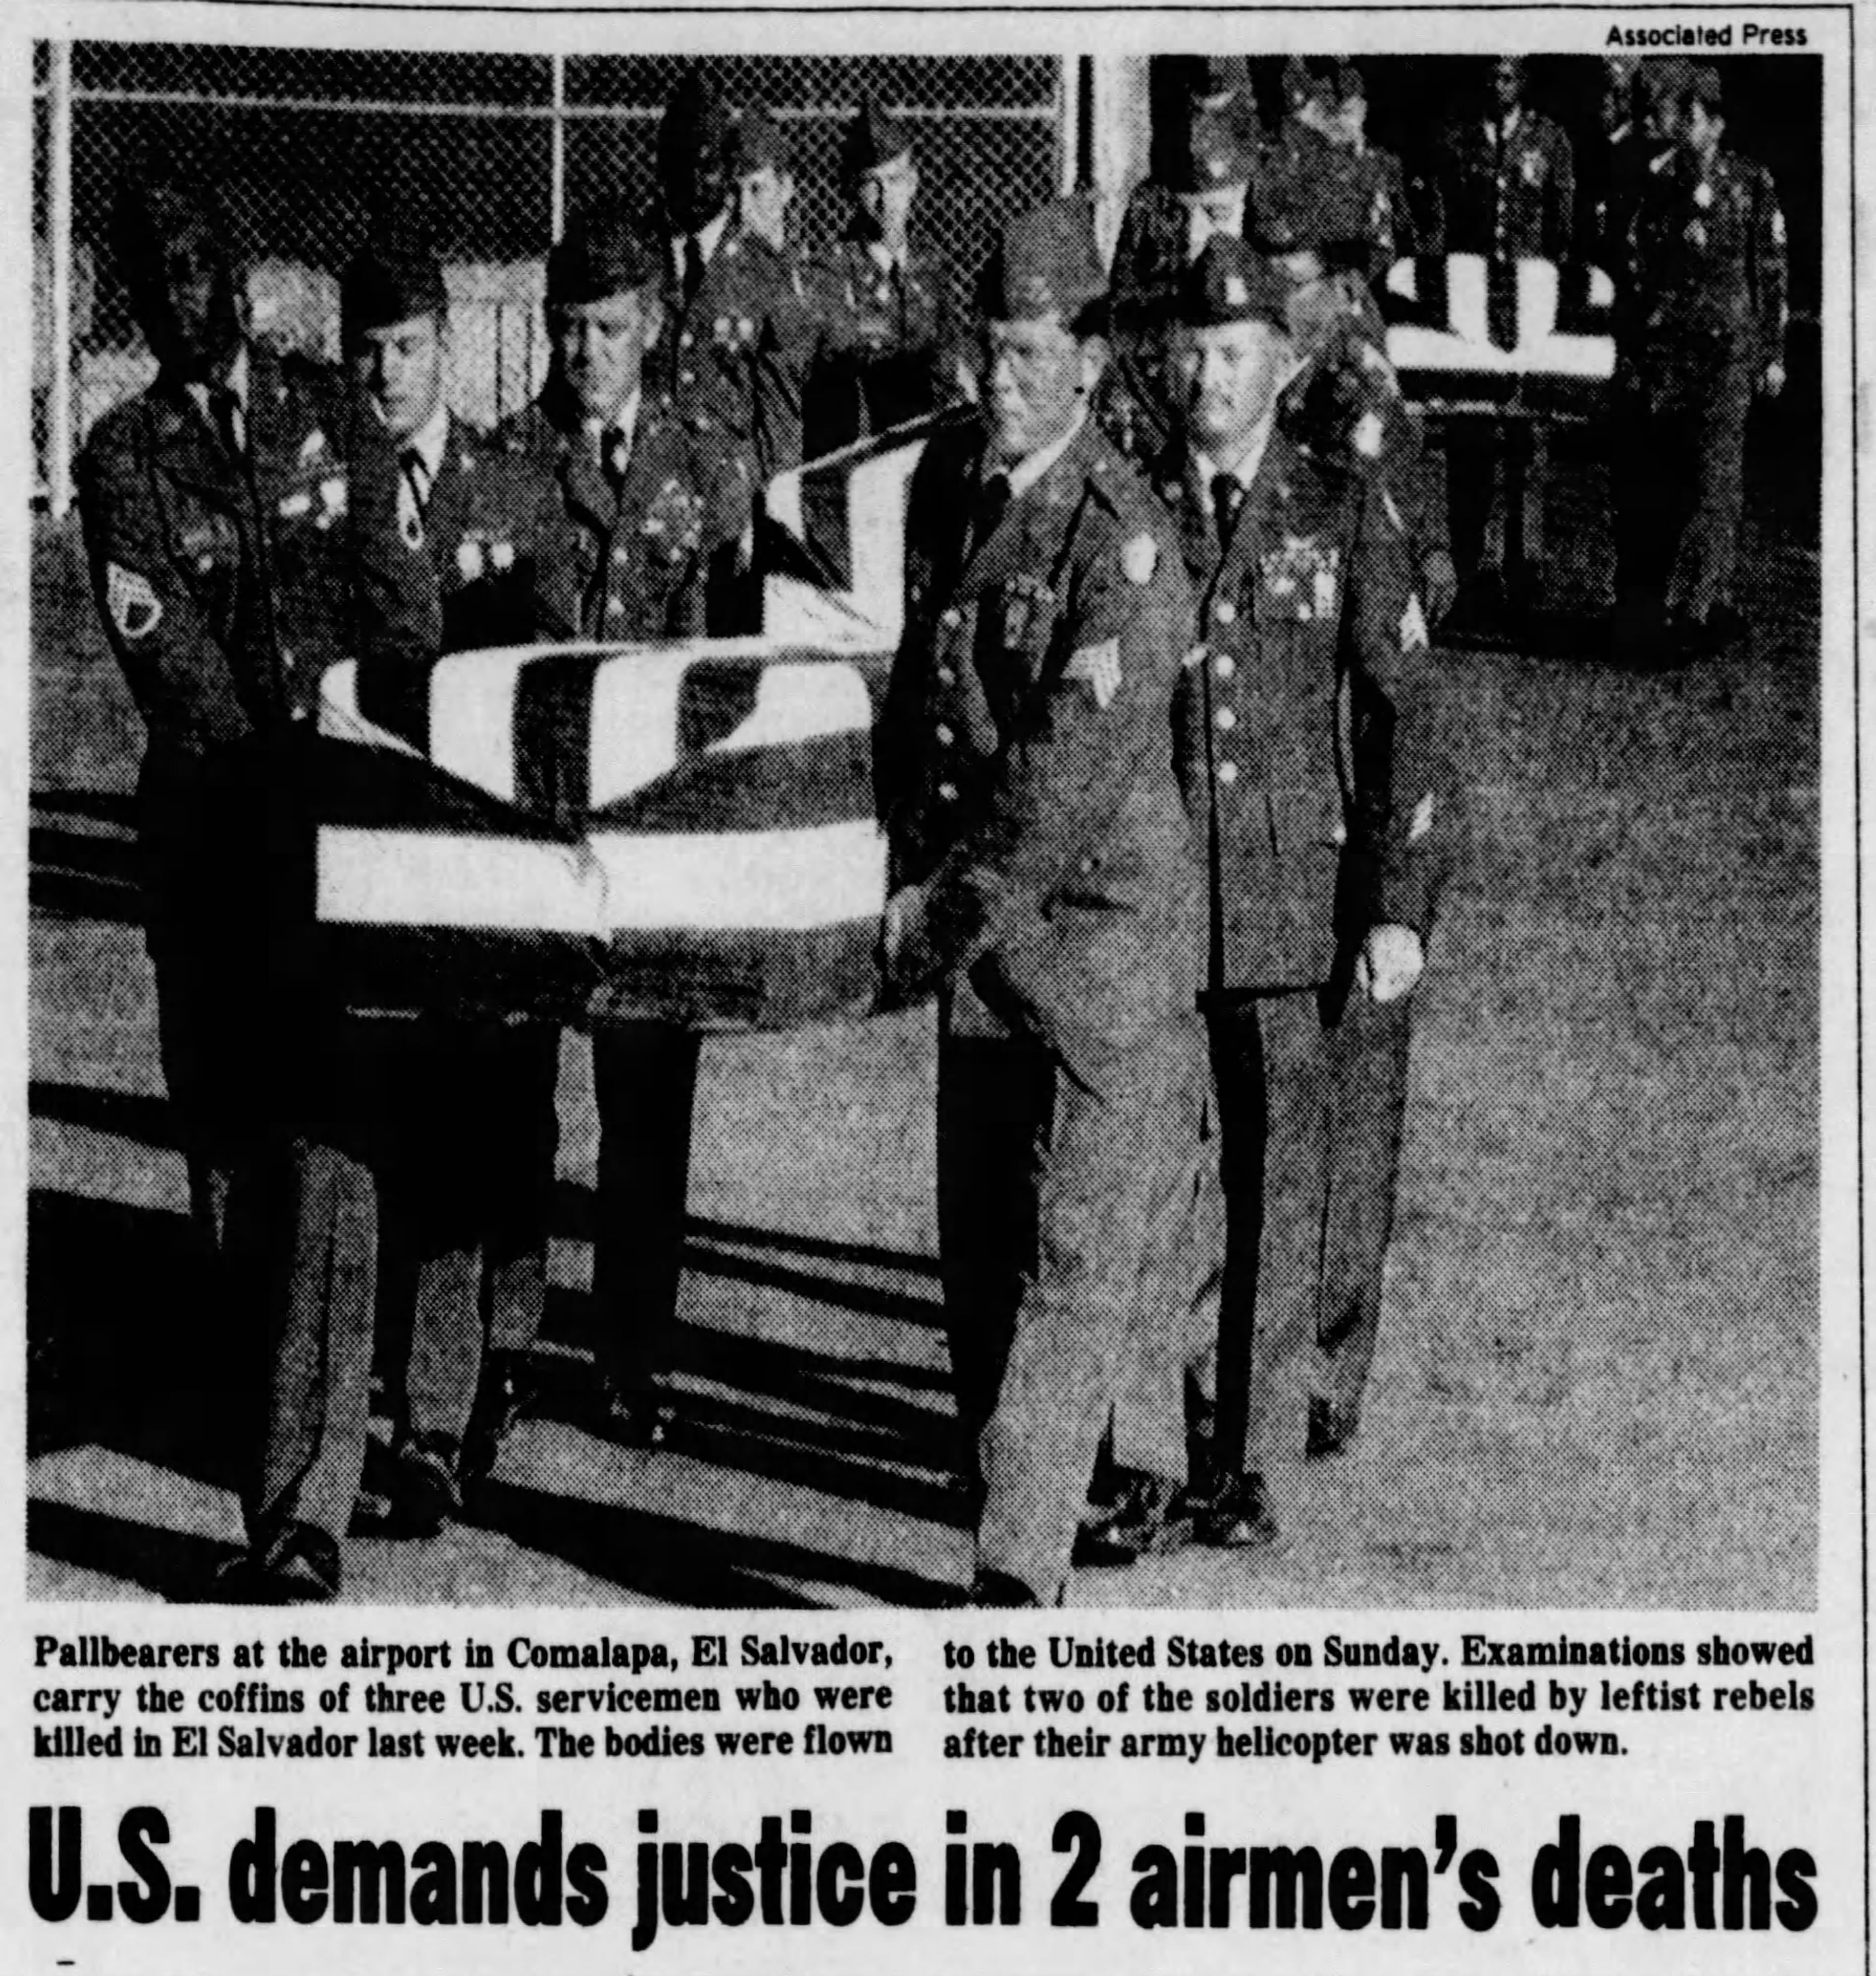 1991 1 7 Des Moines Register US demands justice in 2 airmen's death